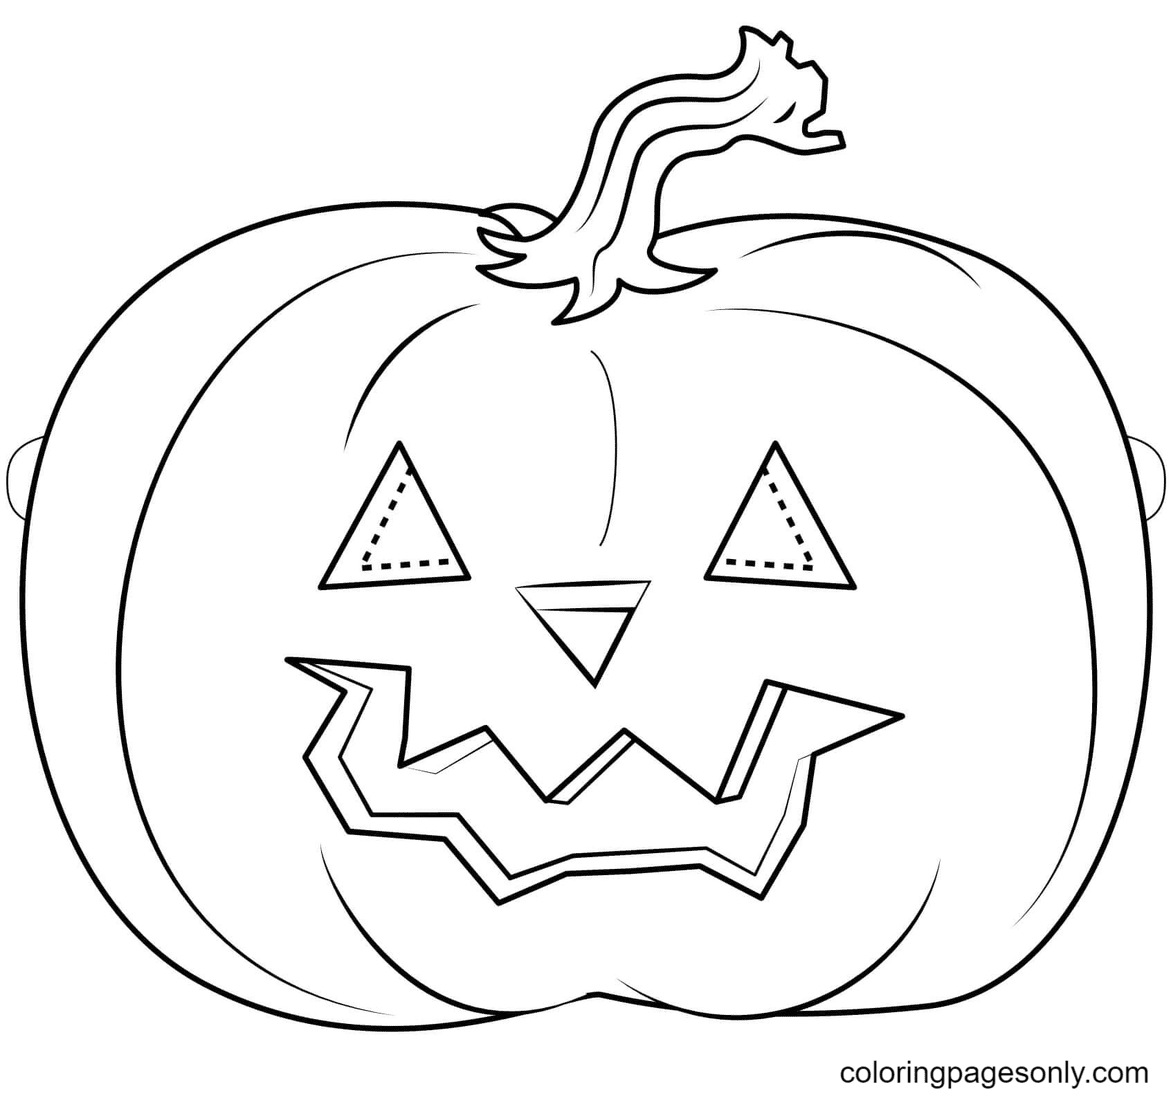 Pumpkin Mask Halloween Coloring Page